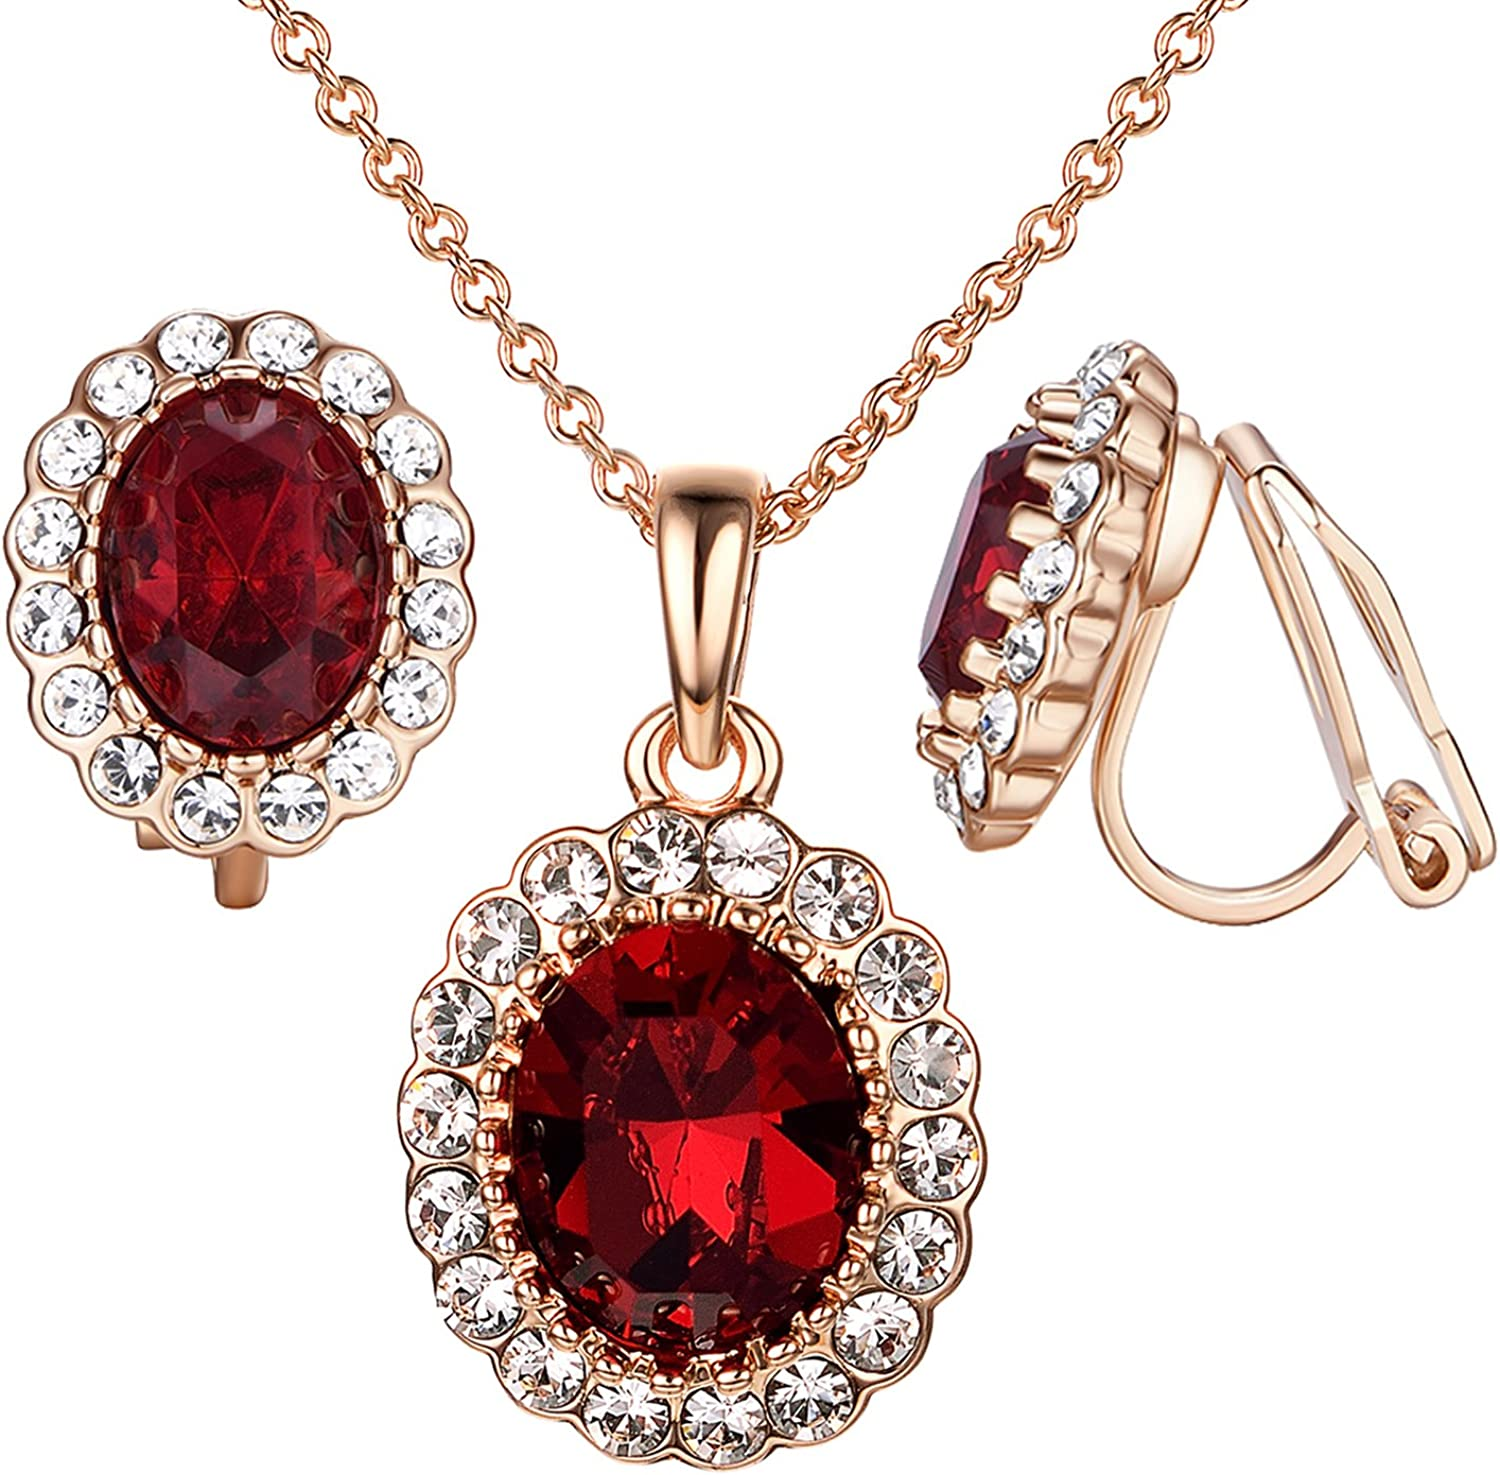 Yoursfs Necklaces and Clip On Earrings for Women 18K Gold Plated